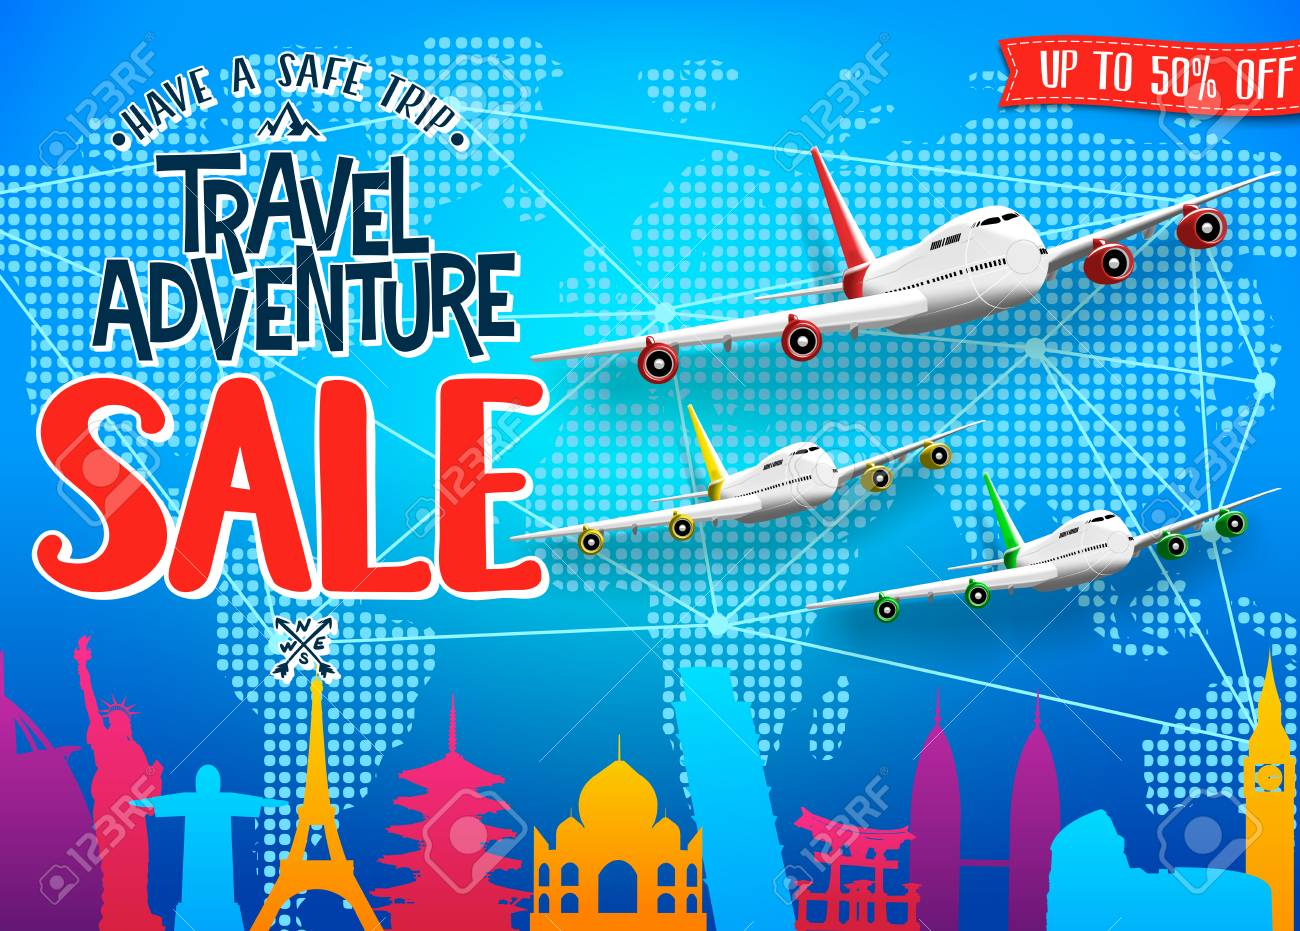 Creative Travel Adventure Sale Promotional Banner With Colorful World Famous Landmarks Silhouette And Airplanes For Advertisement